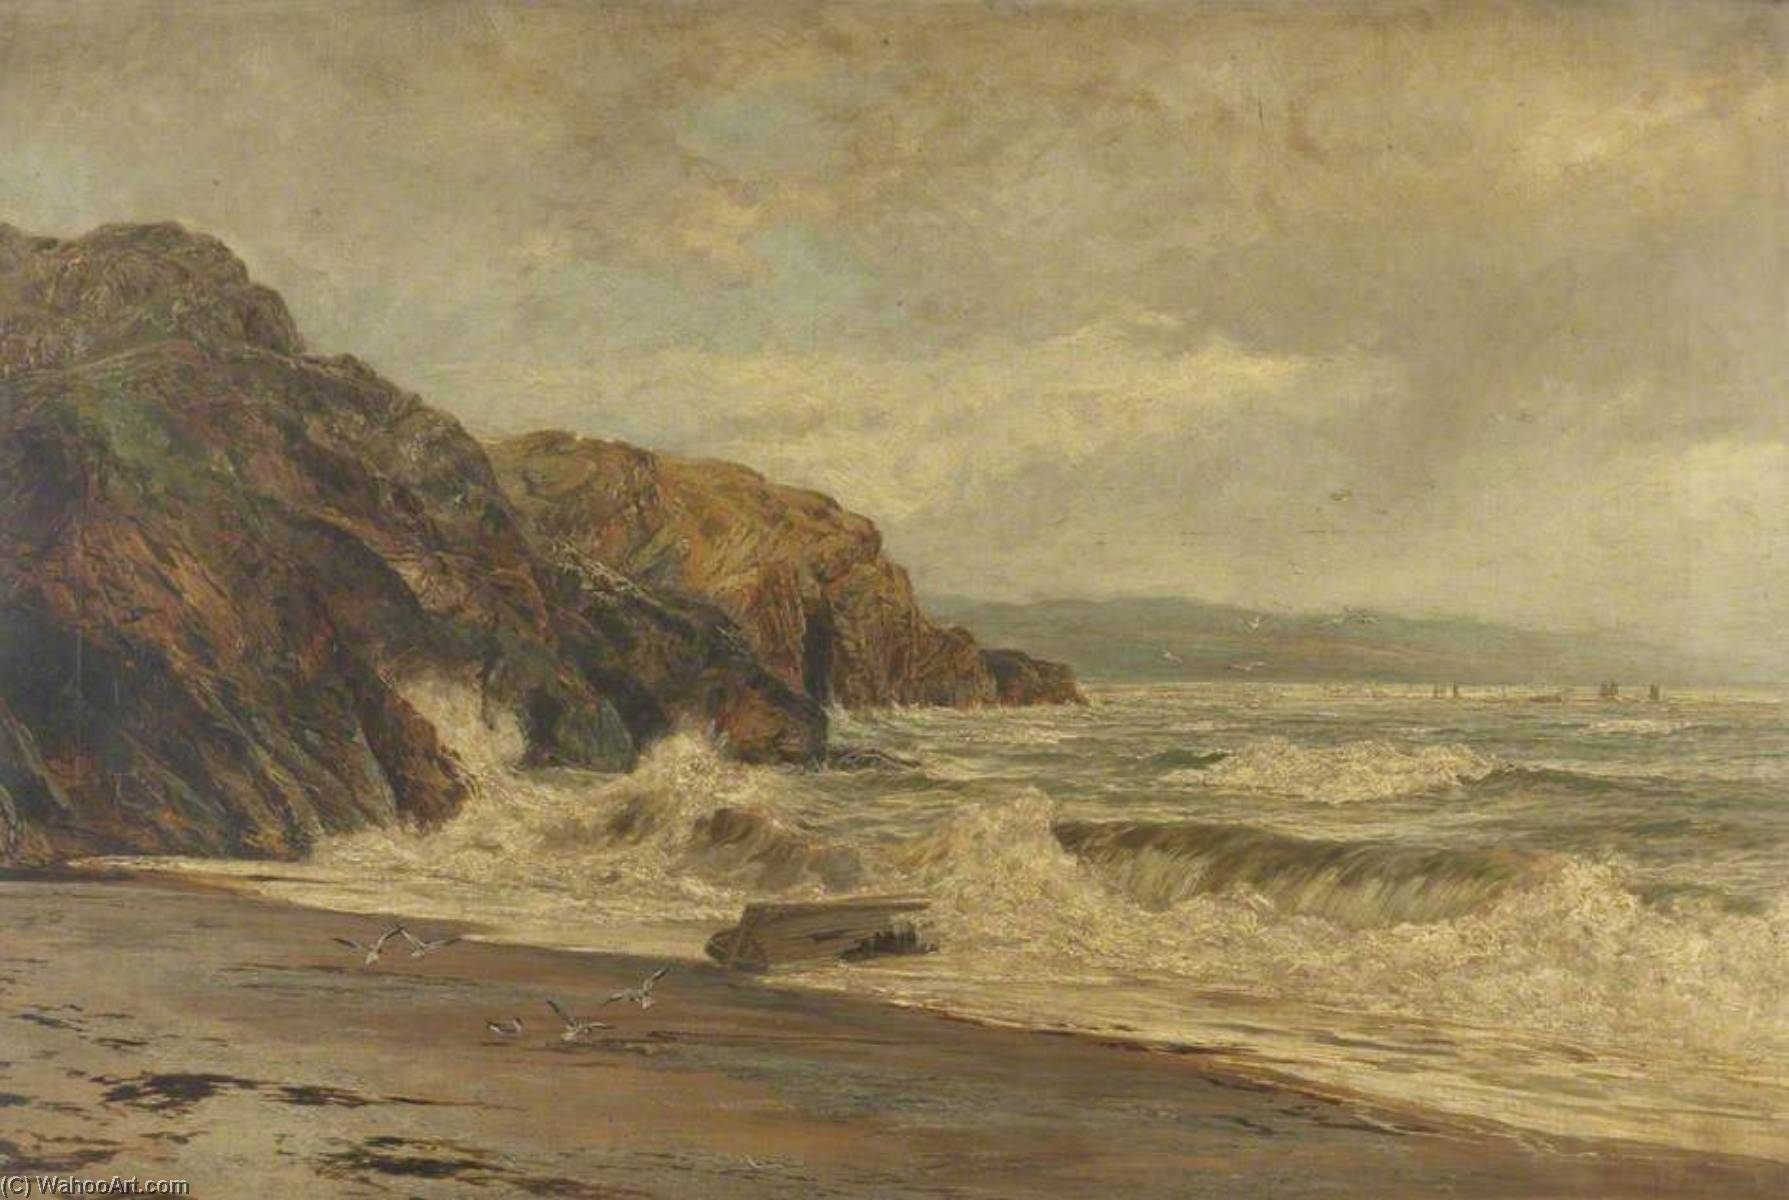 Order Art Reproductions | By the Sad Sea Waves, 1890 by Frederick William Hayes | WahooArt.com